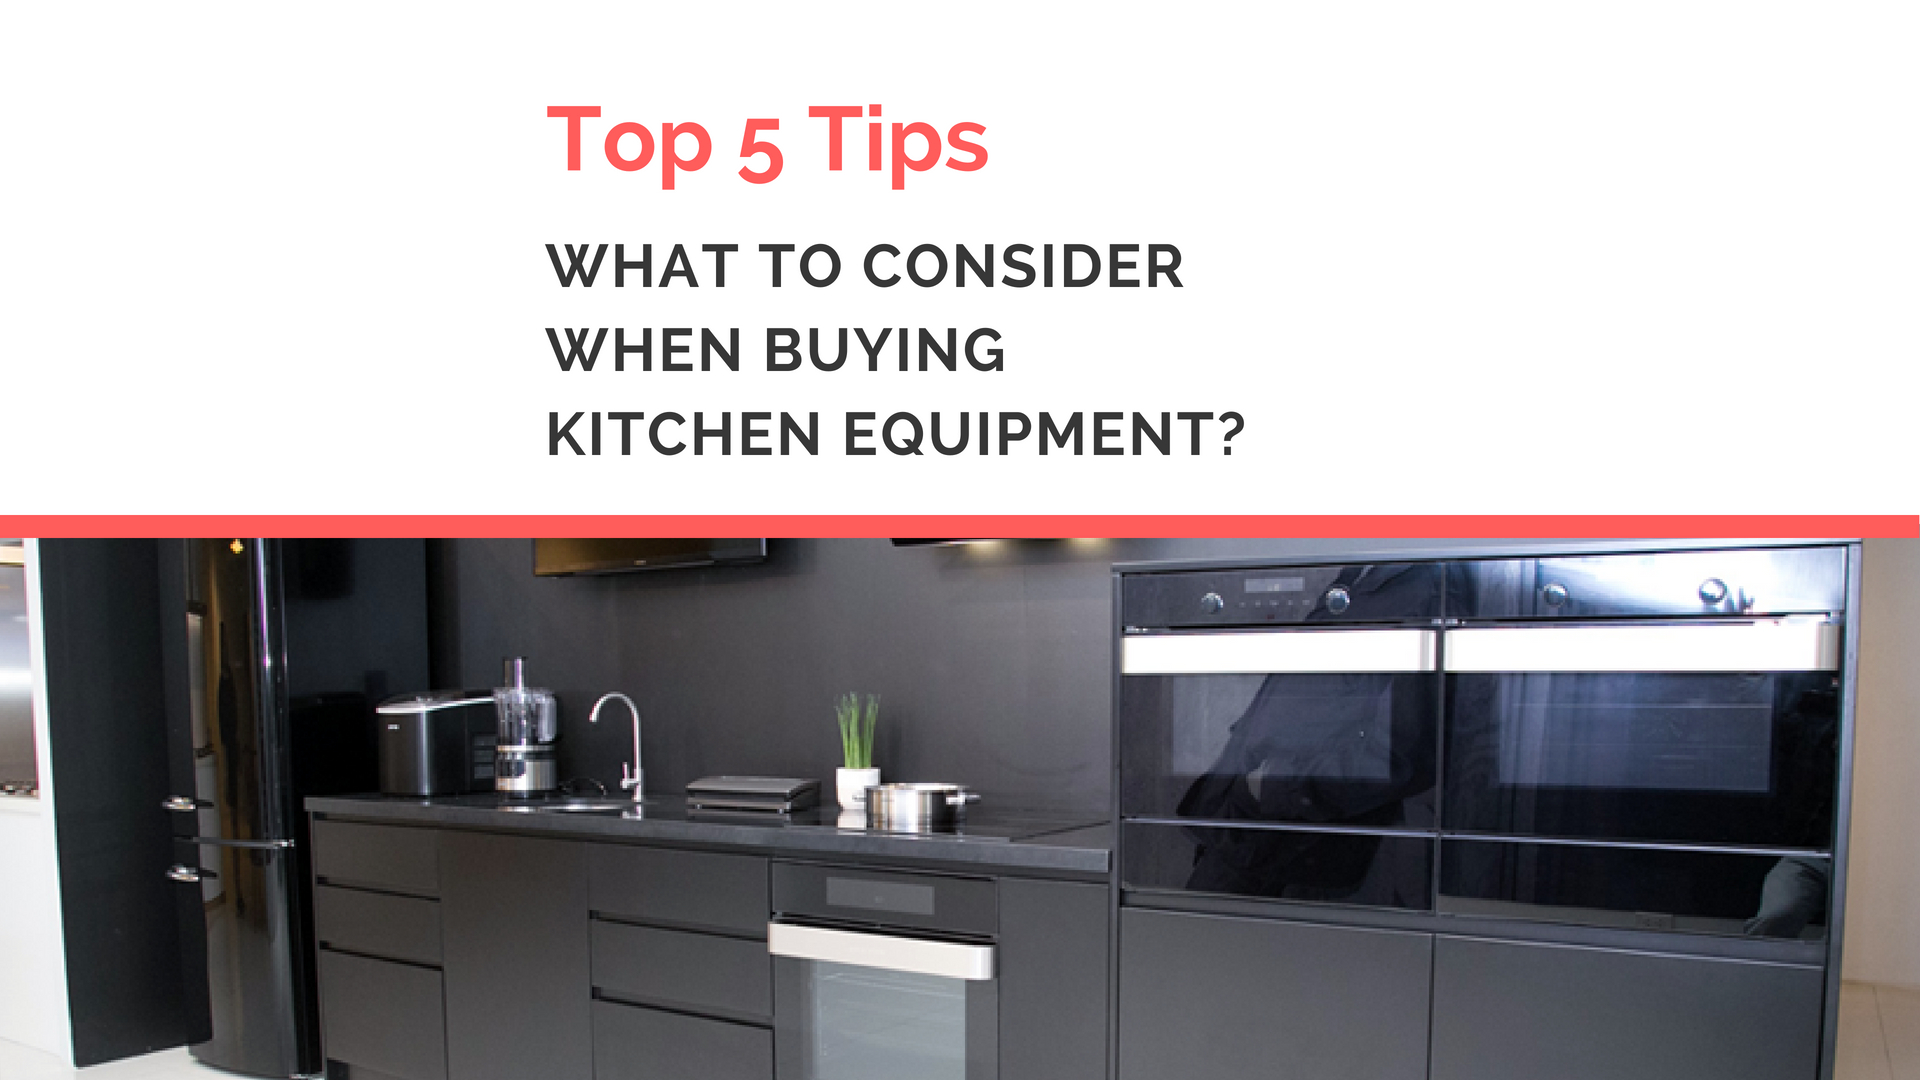 What Should you Consider when Buying Kitchen Equipment?